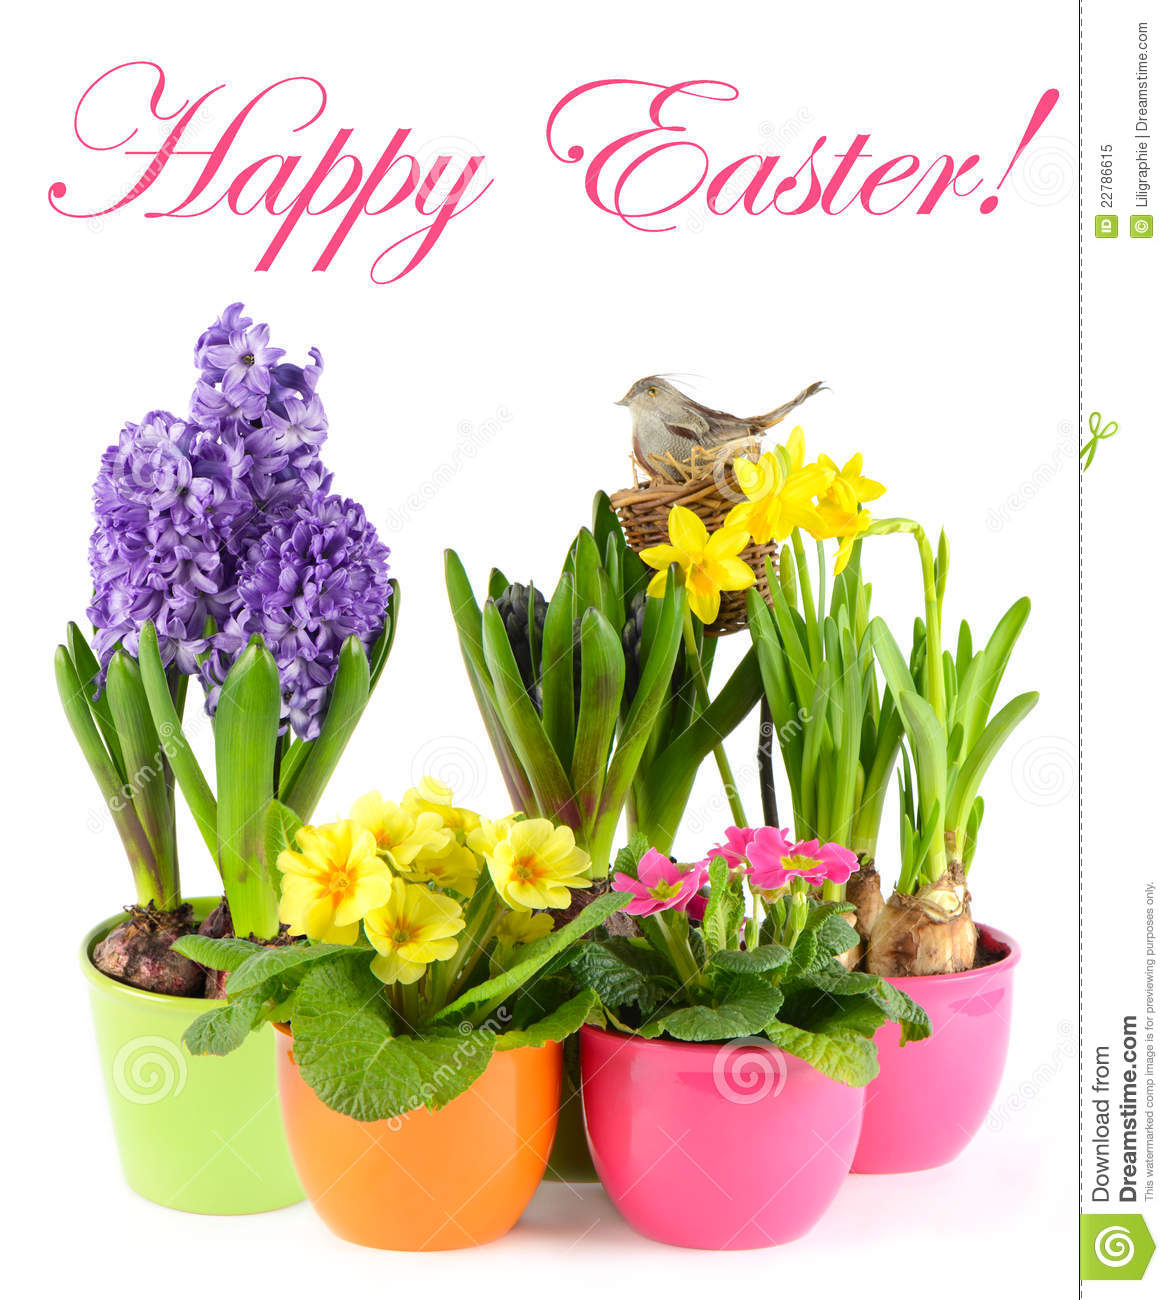 Fresh spring flowers with birds nest easter stock image image of fresh spring flowers with birds nest easter mightylinksfo